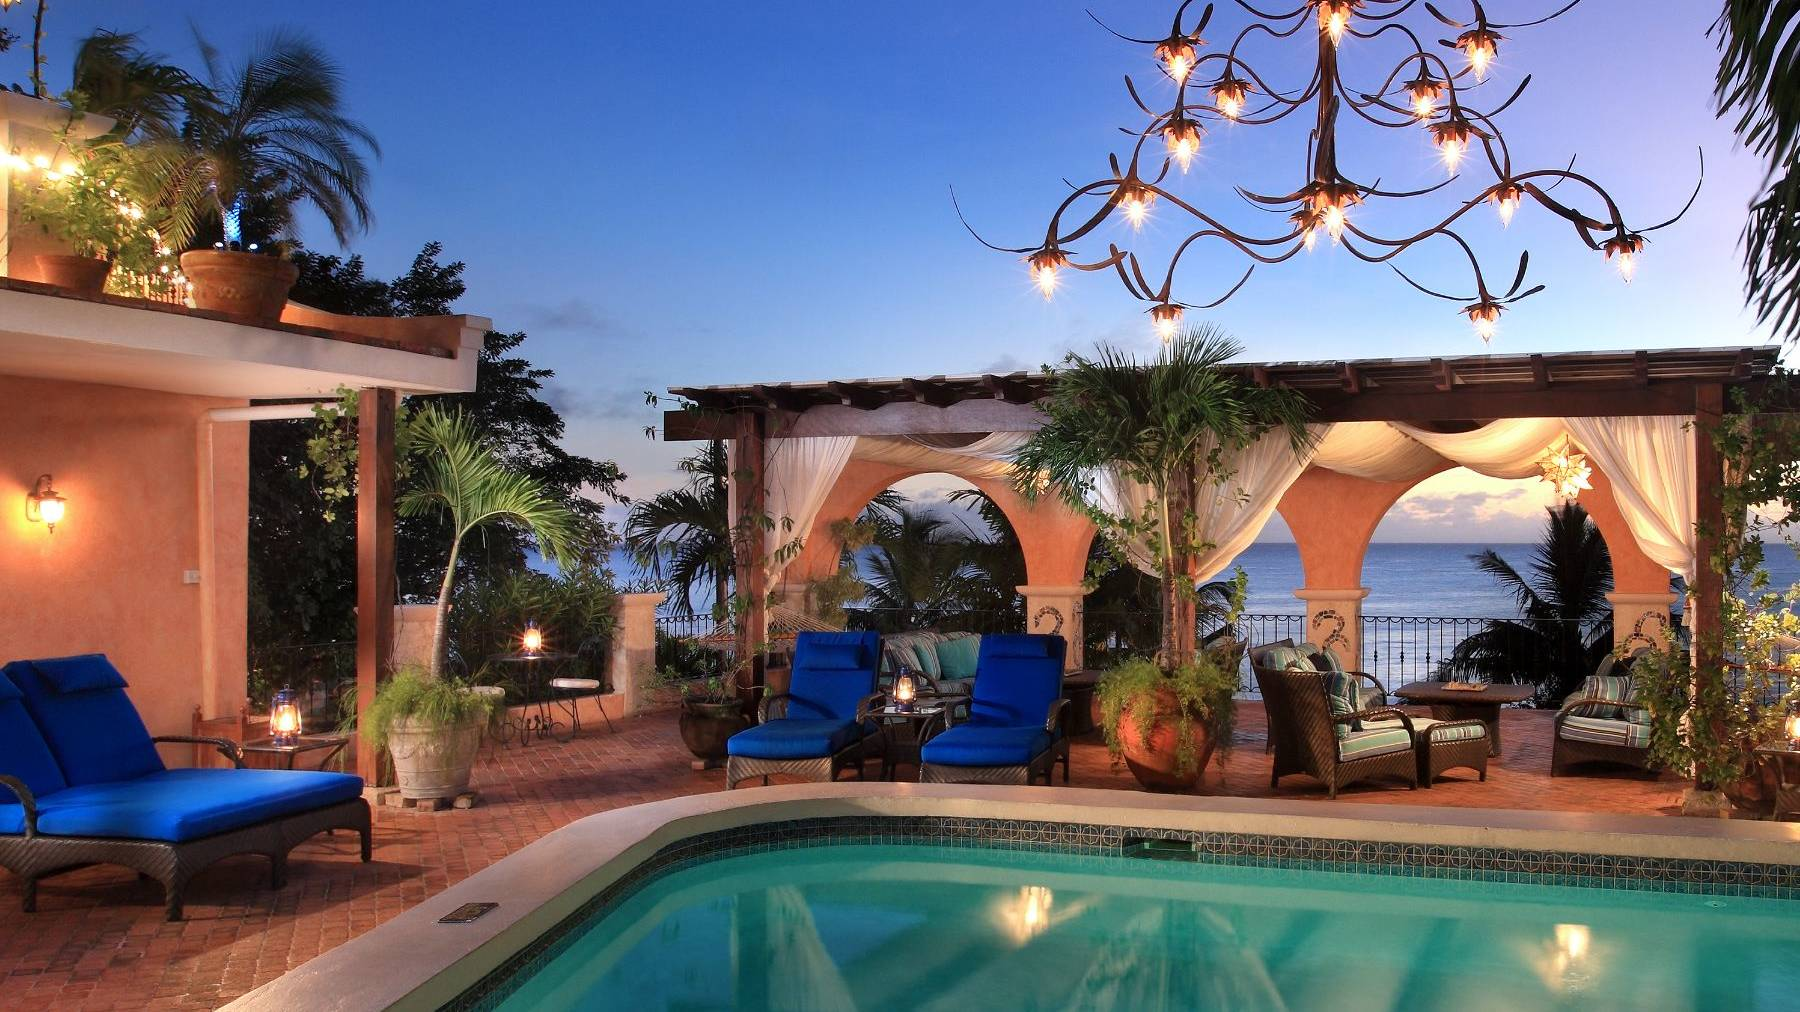 little-arches-boutique-hotel-barbados-images-29.jpeg